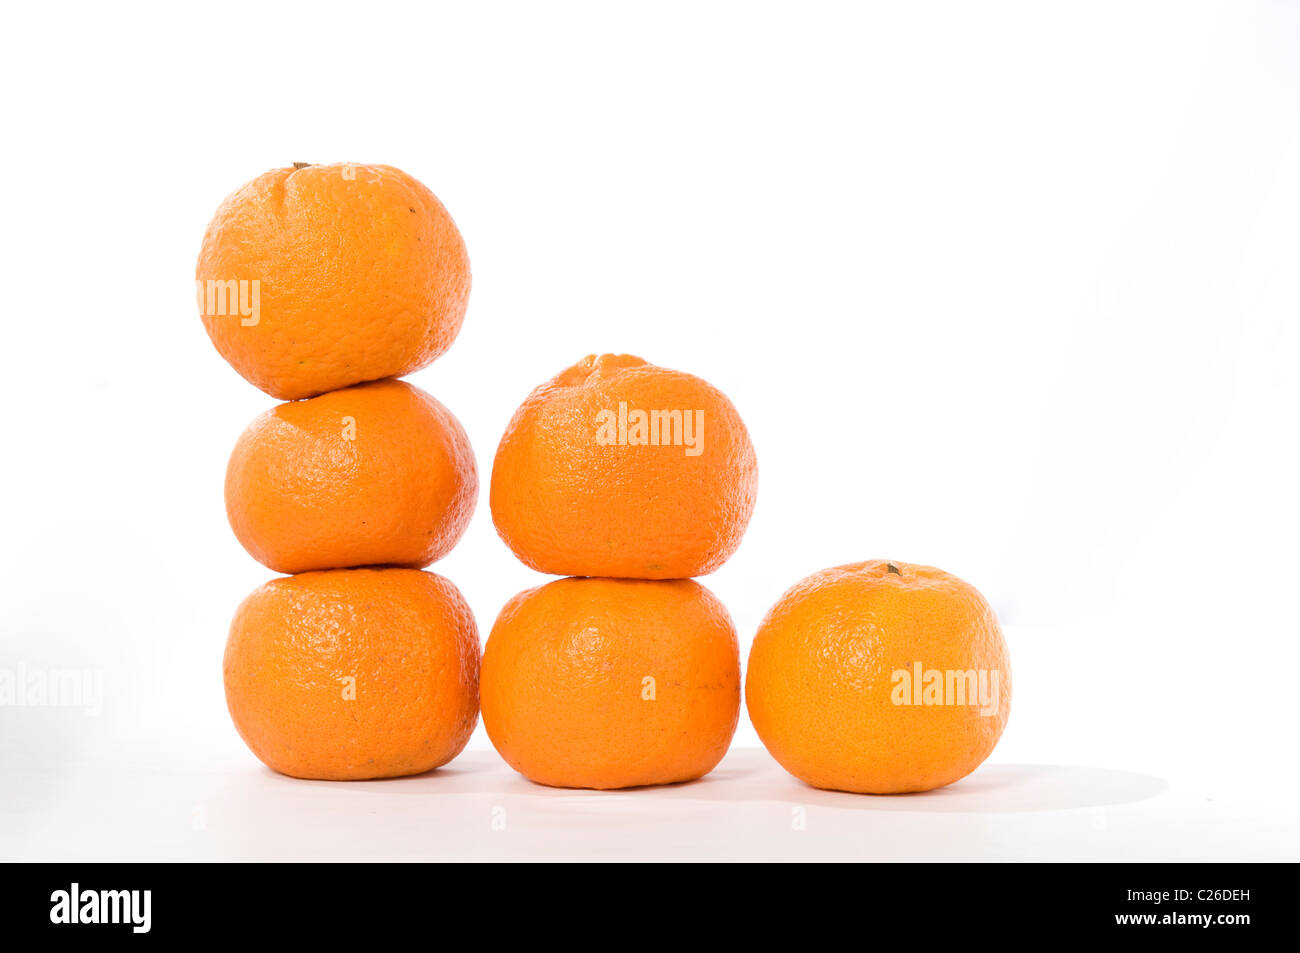 stack of oranges - Stock Image